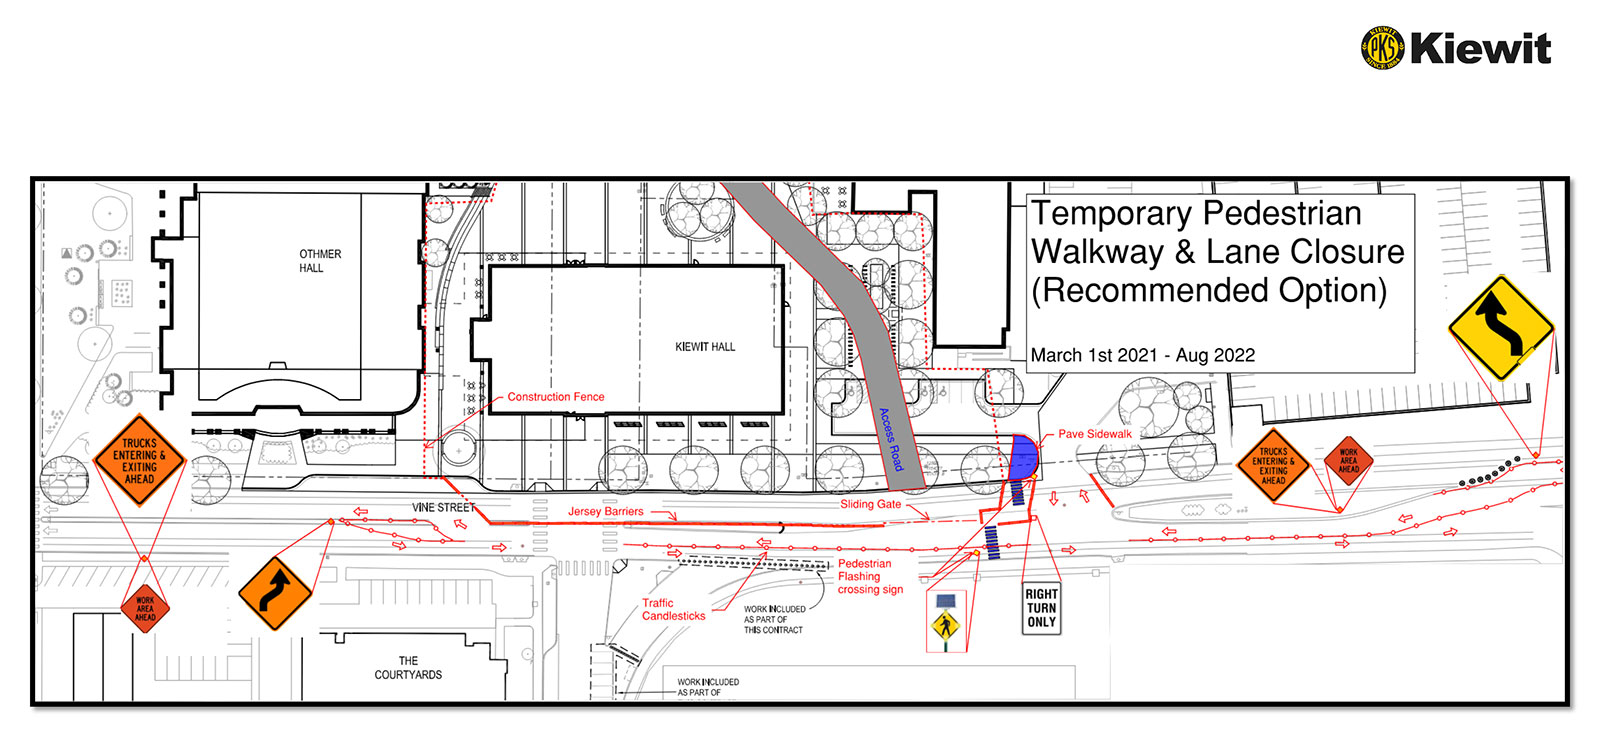 Map of the Temporary Pedestrian Walkway & Lane Closure (Recommended Option) for Kiewit Hall - March 1, 2021 to August 2022